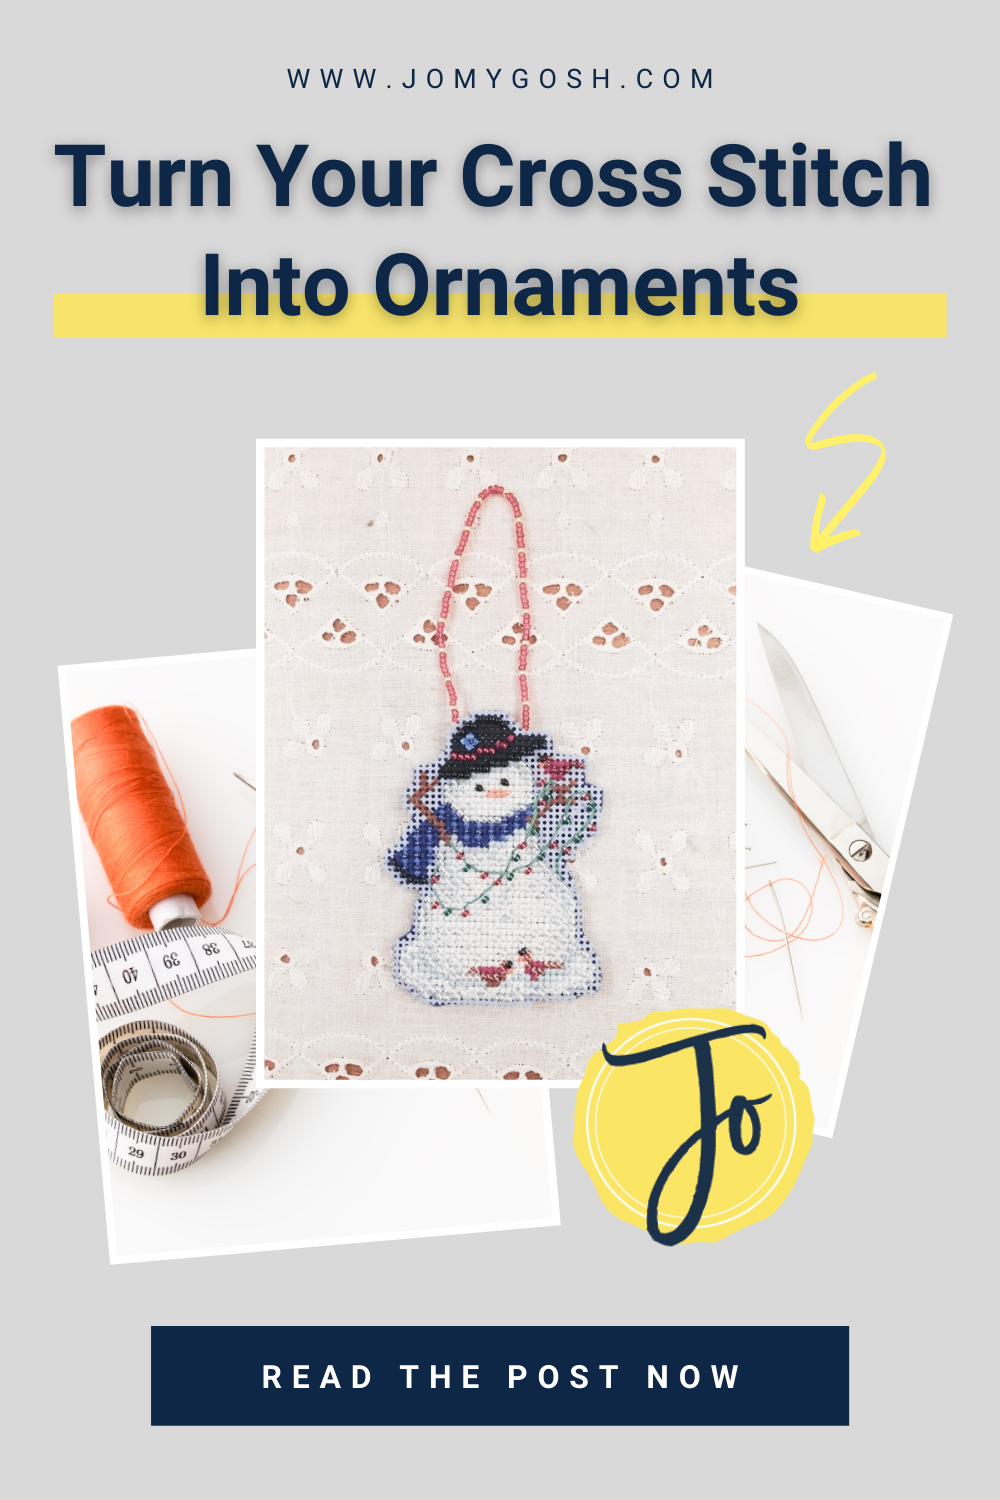 Here's an easy and no-sew way to turn cross stitch into ornaments. #crafting #crafts #crossstitch #needlework #embroidery #sewing